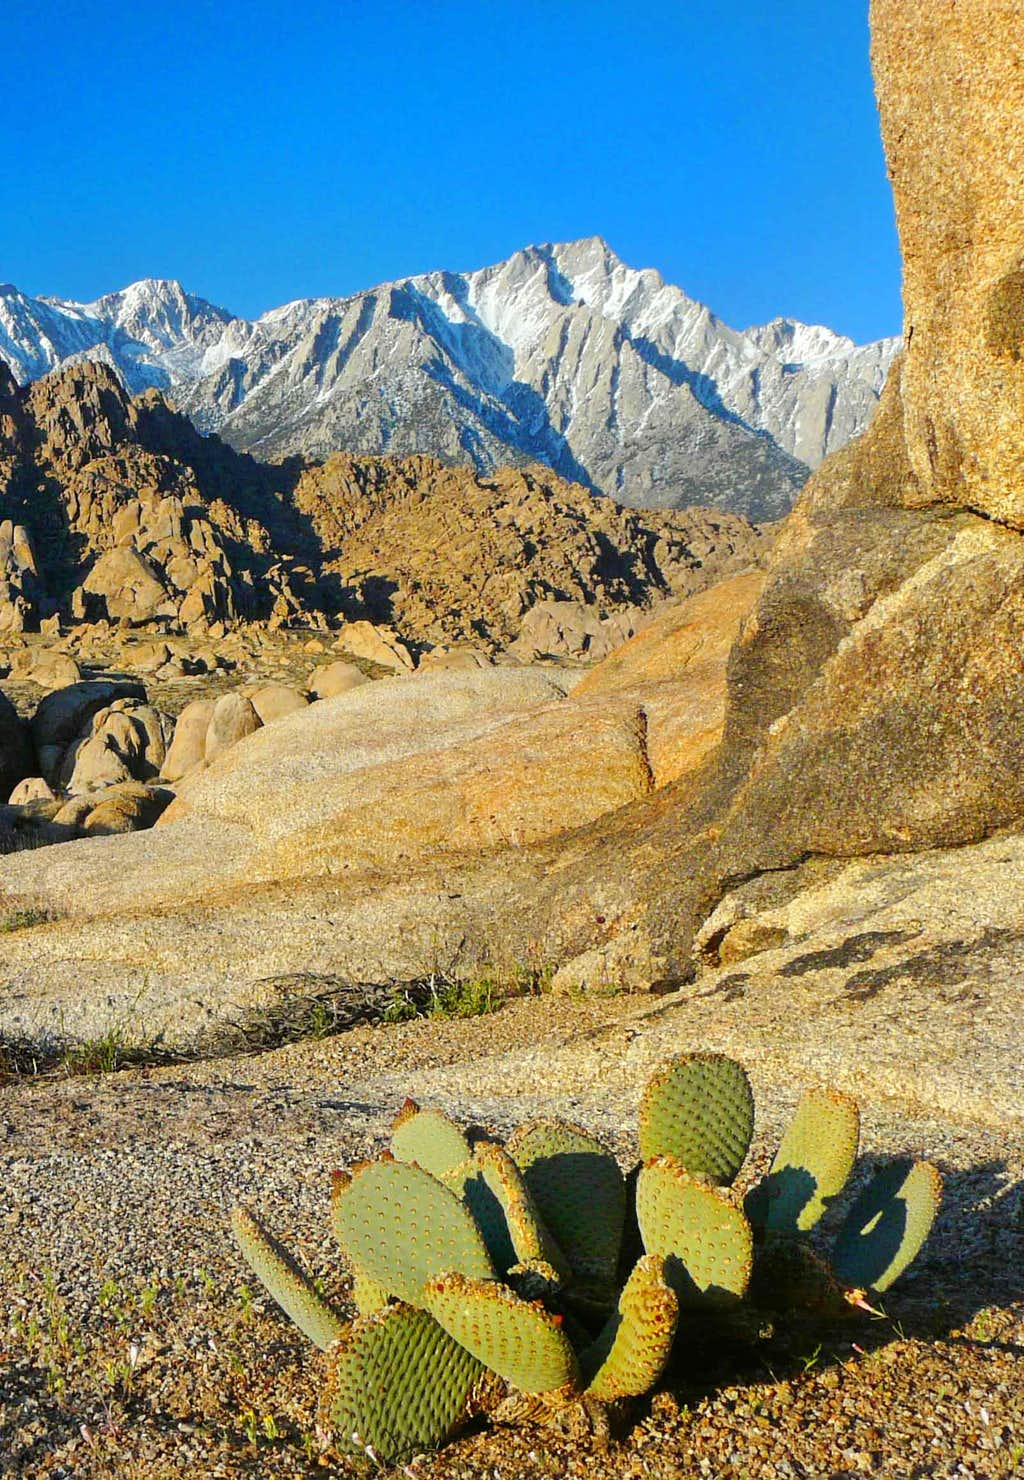 Lone Pine Sierra from the Alabama Hills